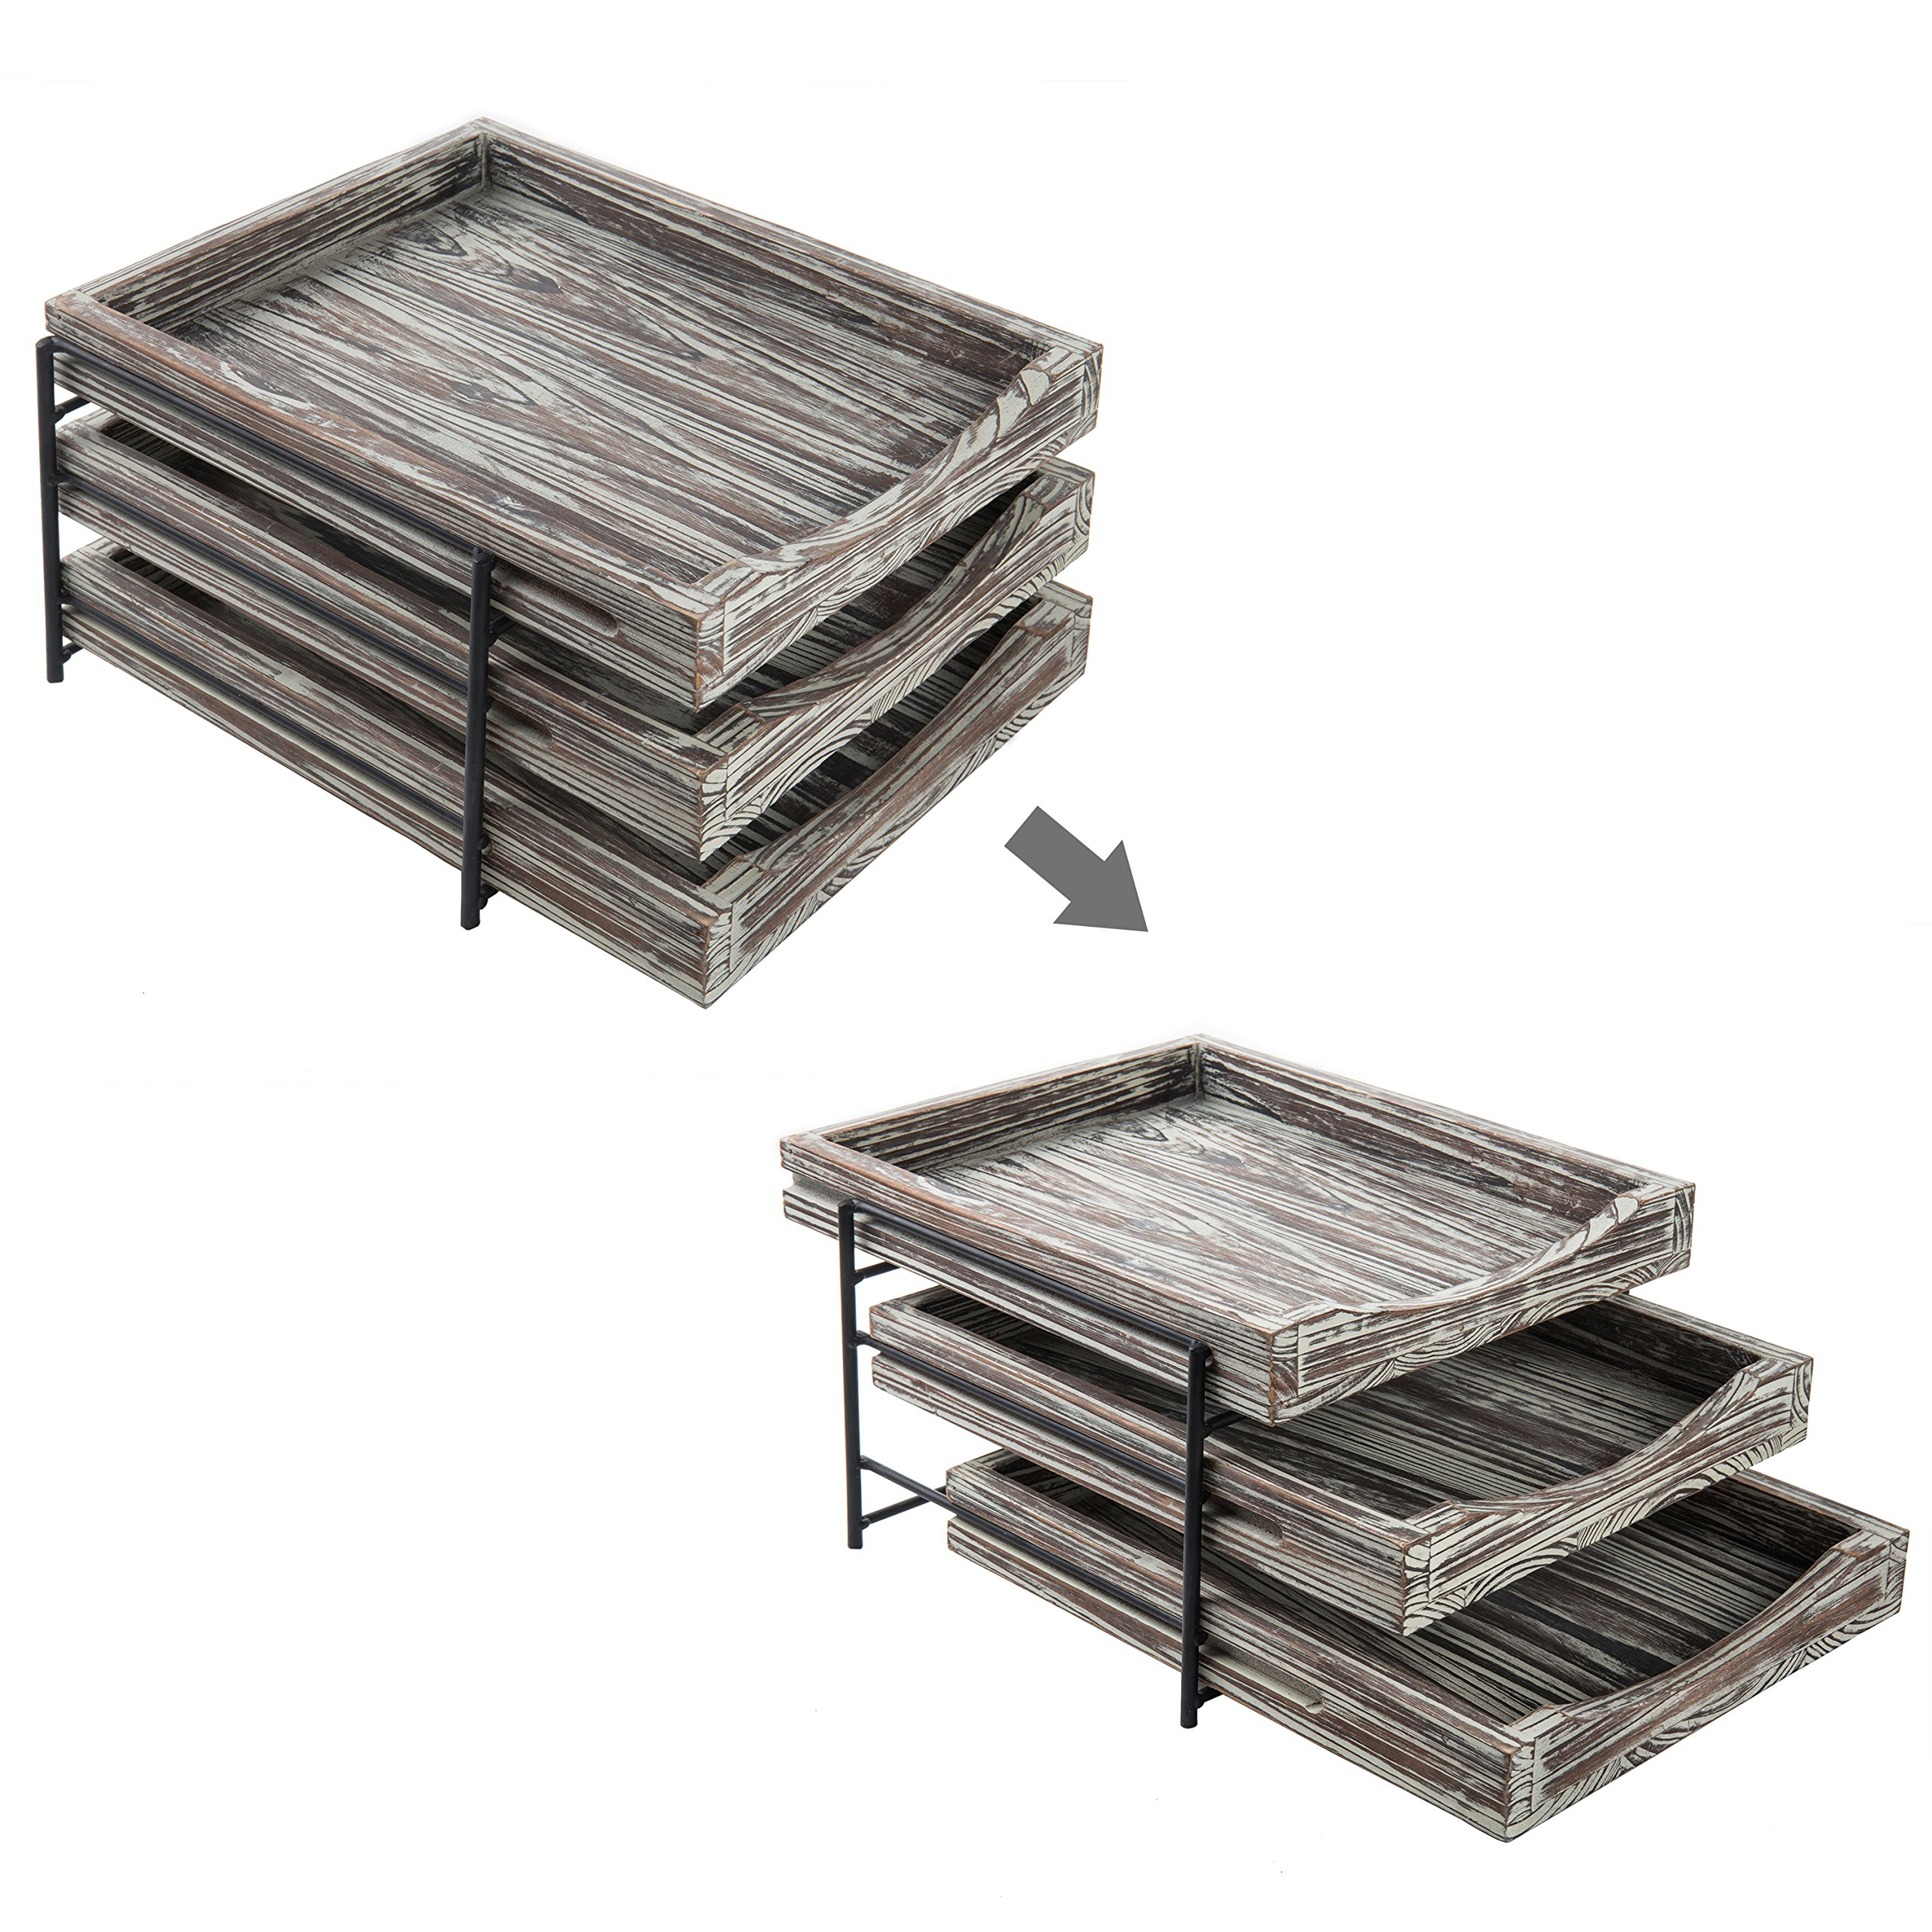 MyGift 3-Tier Rustic Torched Wood & Black Metal Document Organizer with Sliding Trays by MyGift (Image #5)